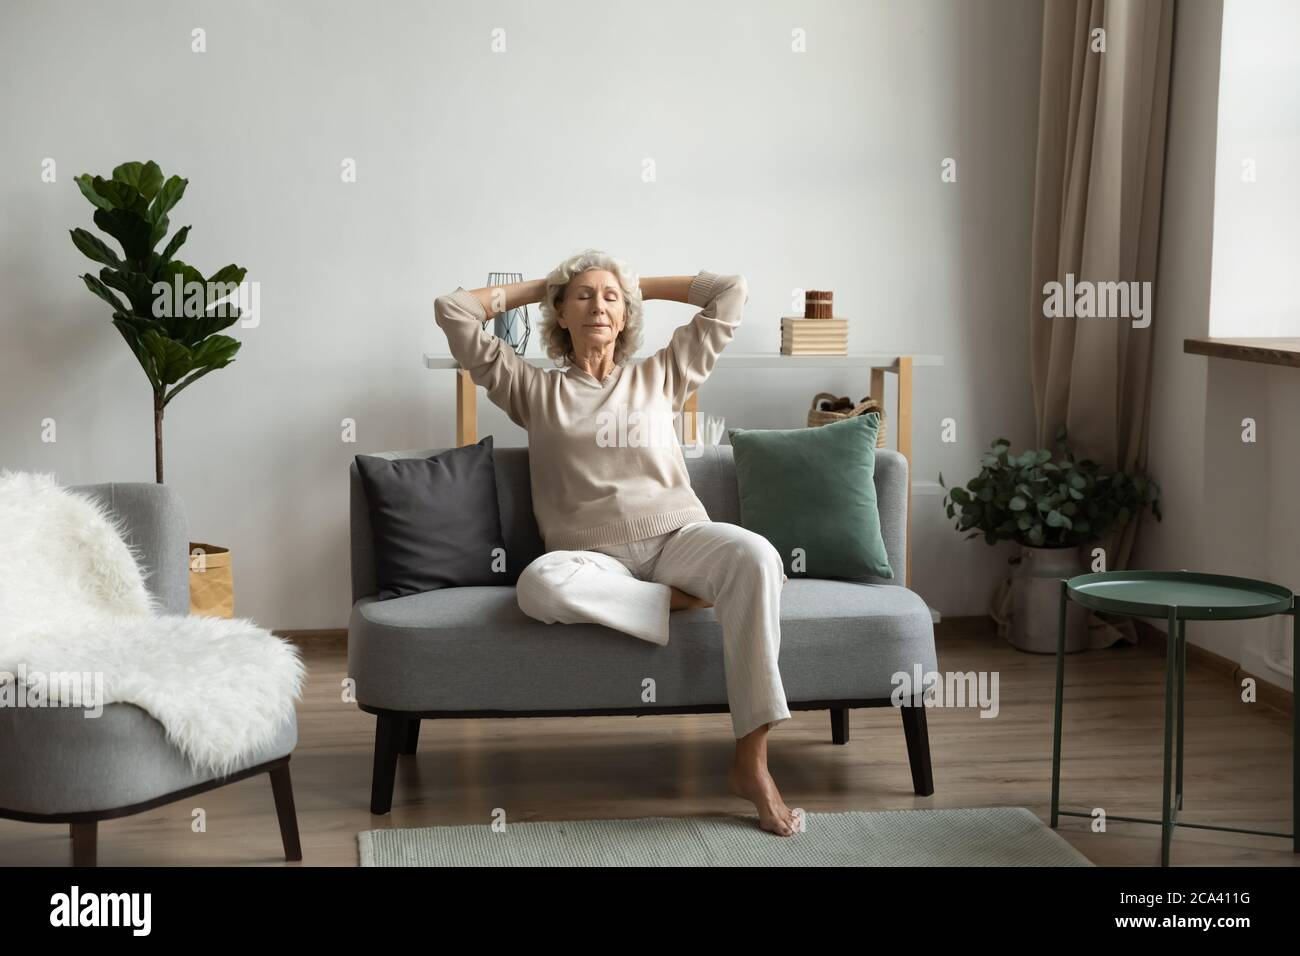 In living room on modern comfy couch relaxing mature woman Stock Photo